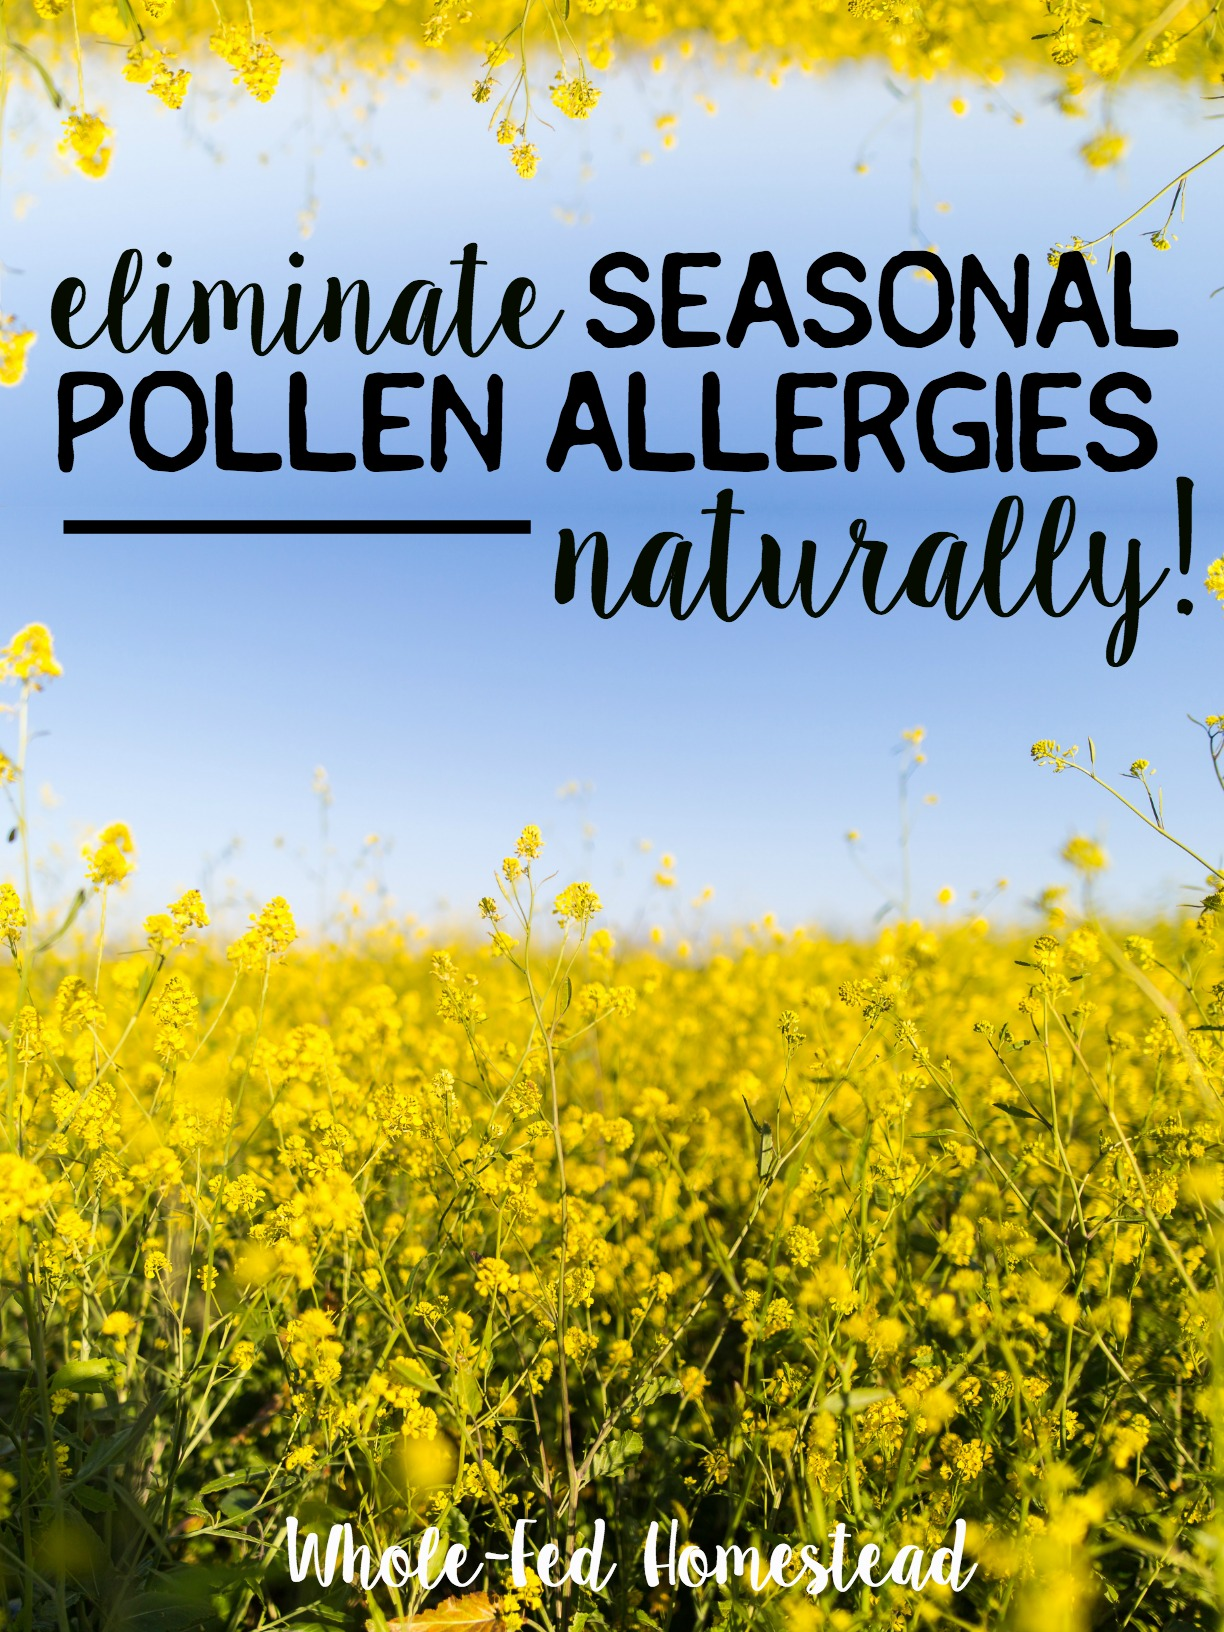 Eliminate season pollen allergies naturally